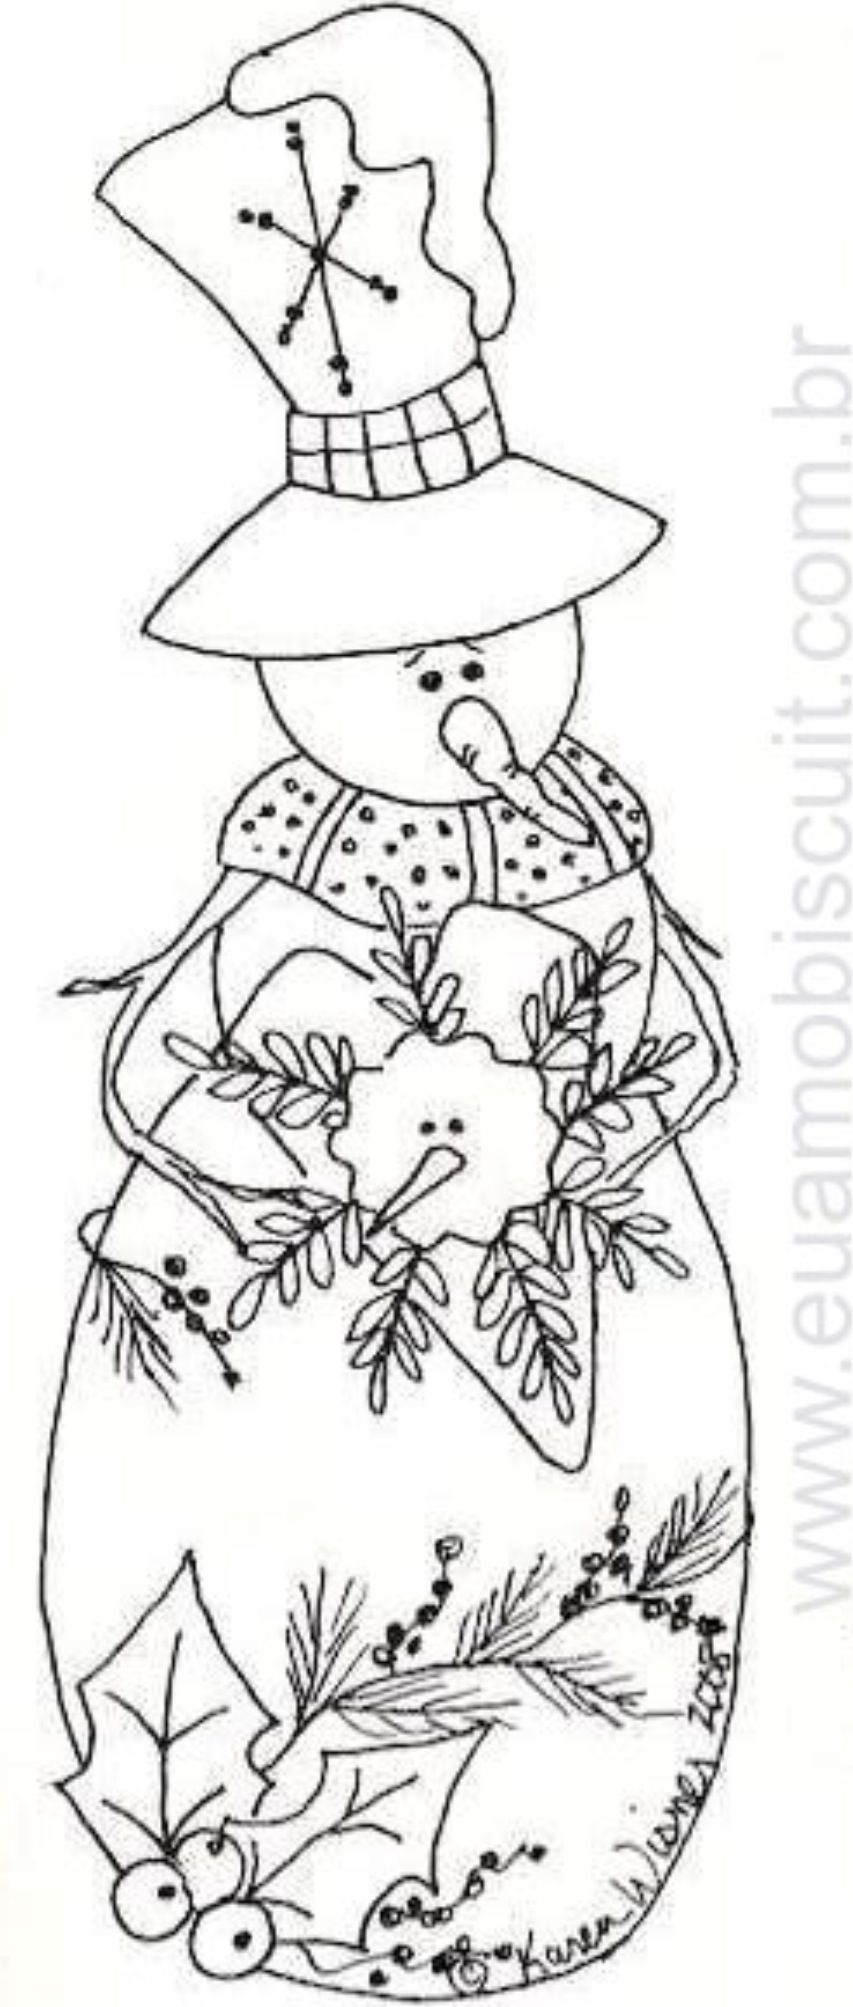 Snow Girl  MIS COSTURAS  Pinterest  Snowman Embroidery and Craft